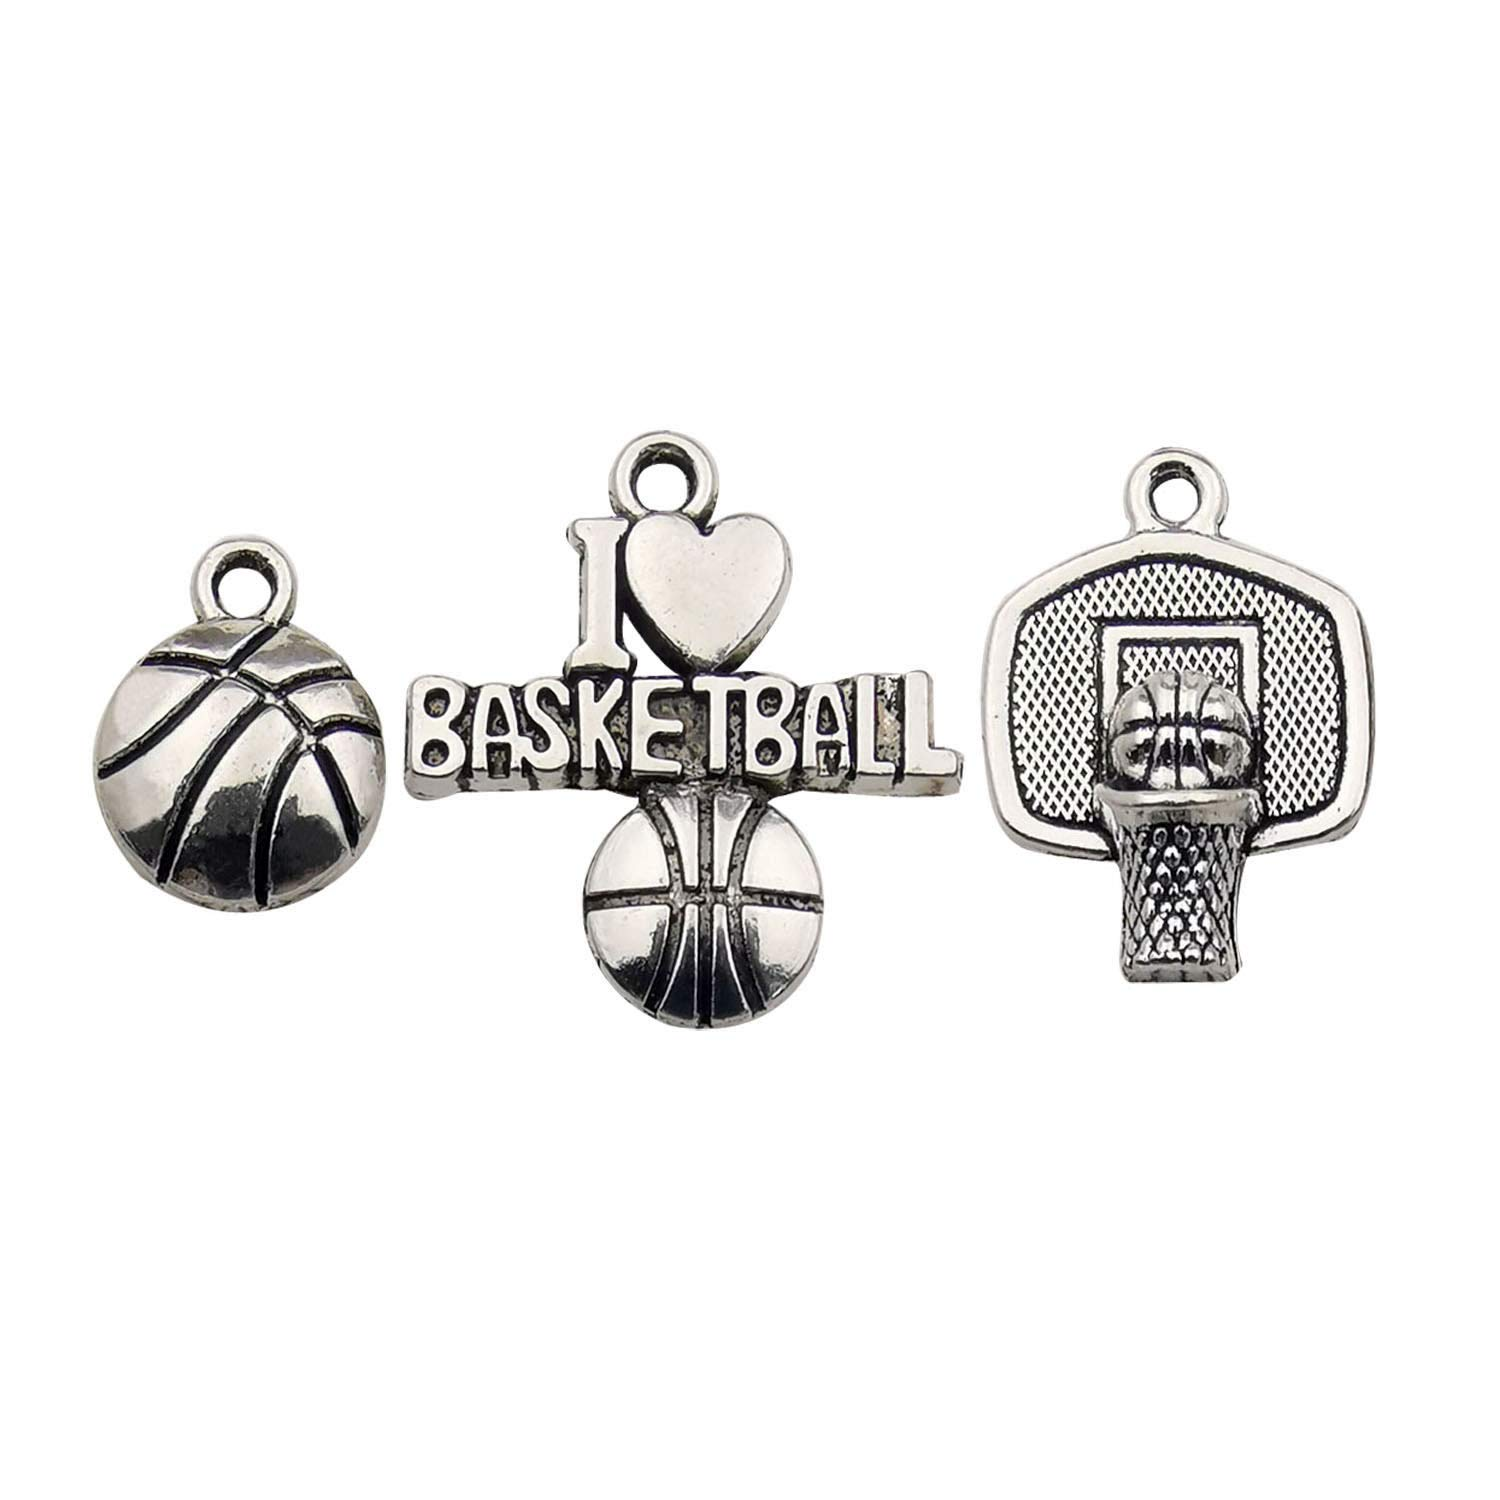 Ball Sports Charms-60pcs Alloy Ball Games Football Sports Charms for Crafting DIY Necklace Earrings Bracelet Jewelry Making Accessaries m131 (Football Charms)